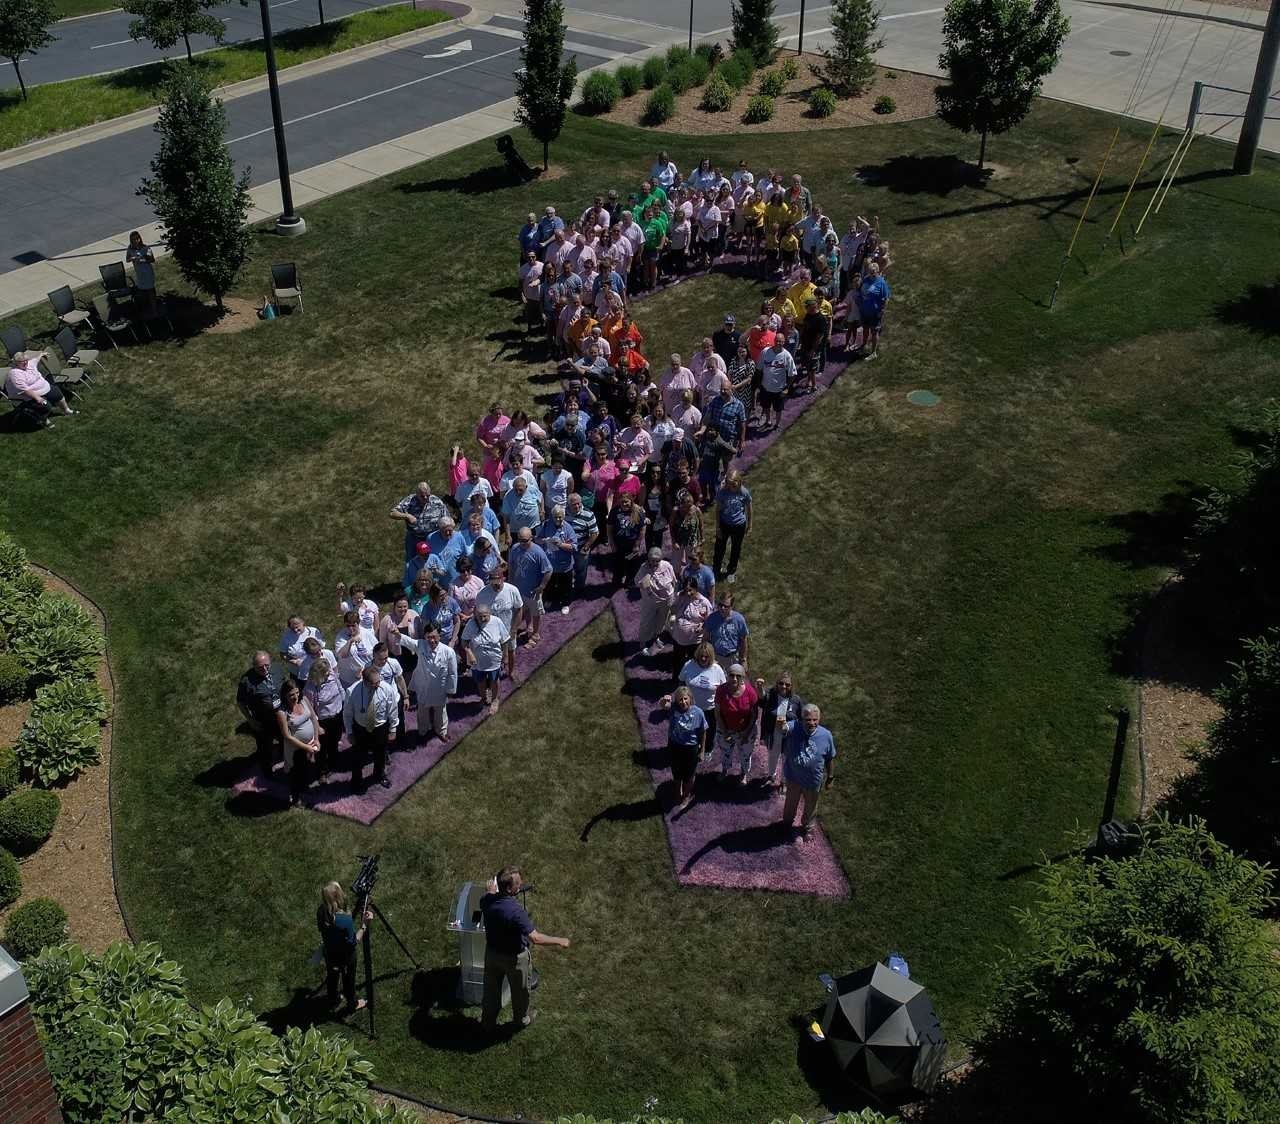 Cancer survivors and families come together to celebrate Cancer Survivor Day. (Photo provided by Blessing Healthcare System)